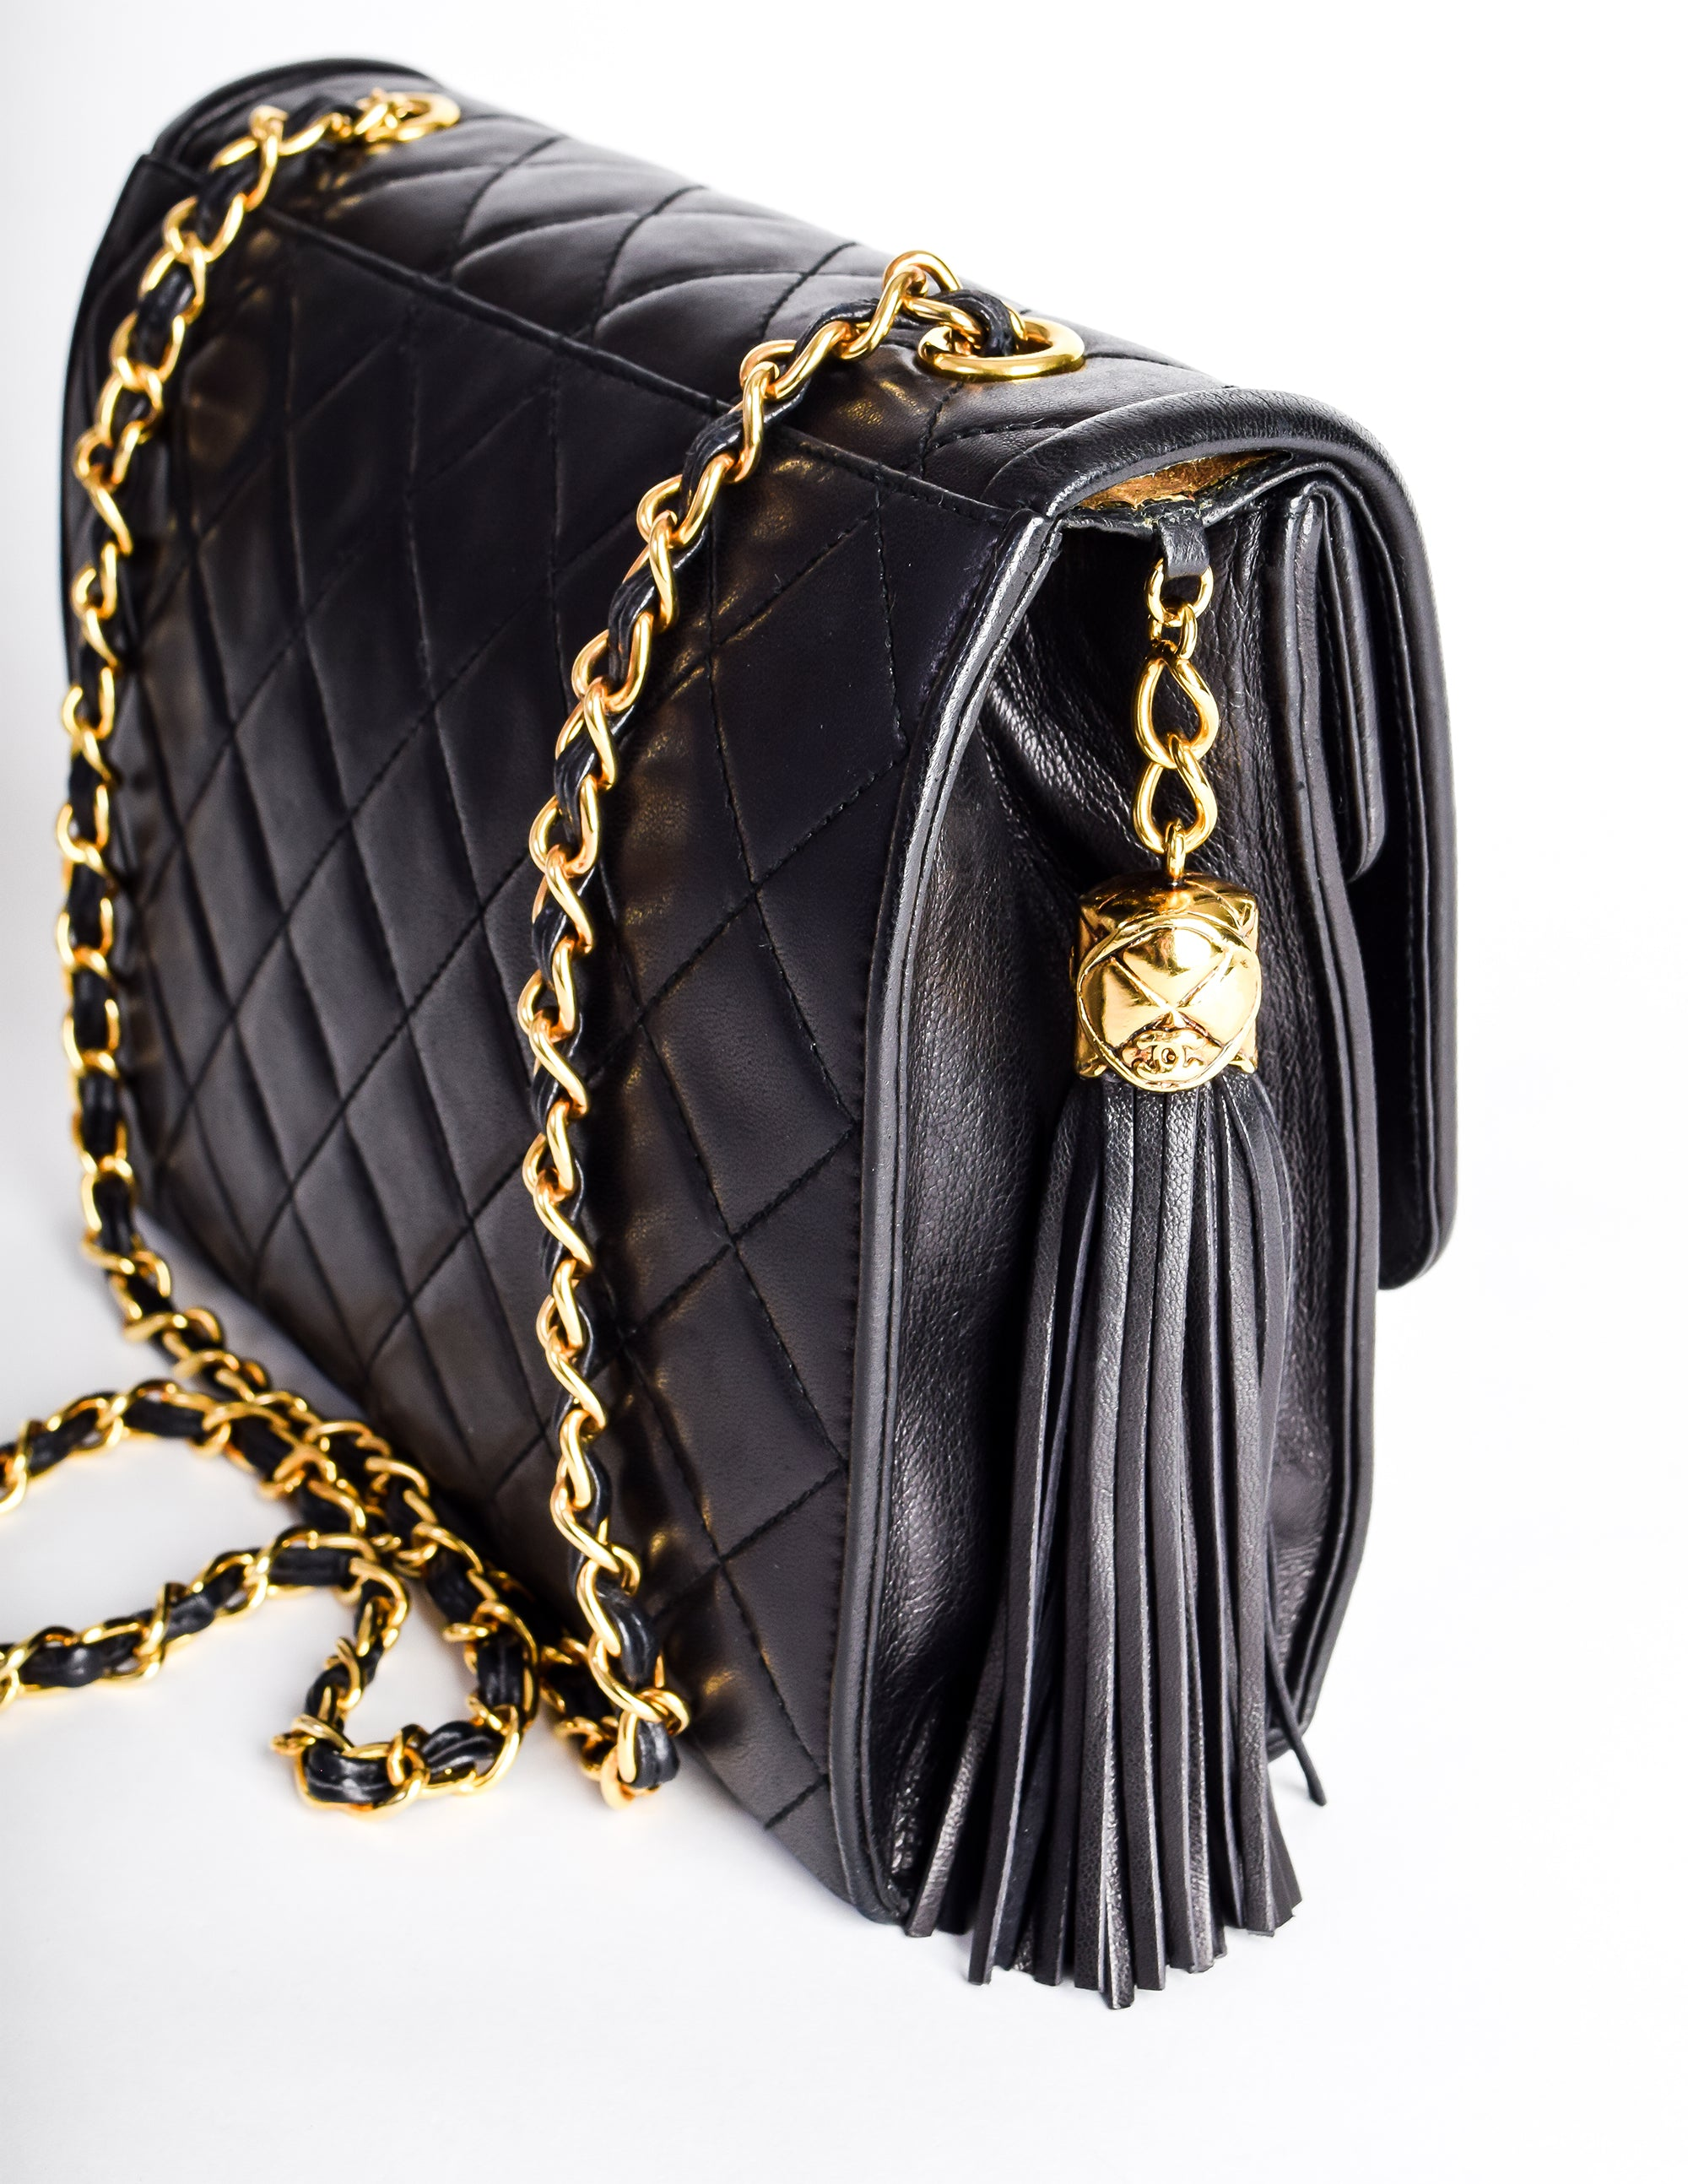 298ddc7eeec22a Chanel Vintage Black Quilted Lambskin Crossover Double Flap Tassel Bag